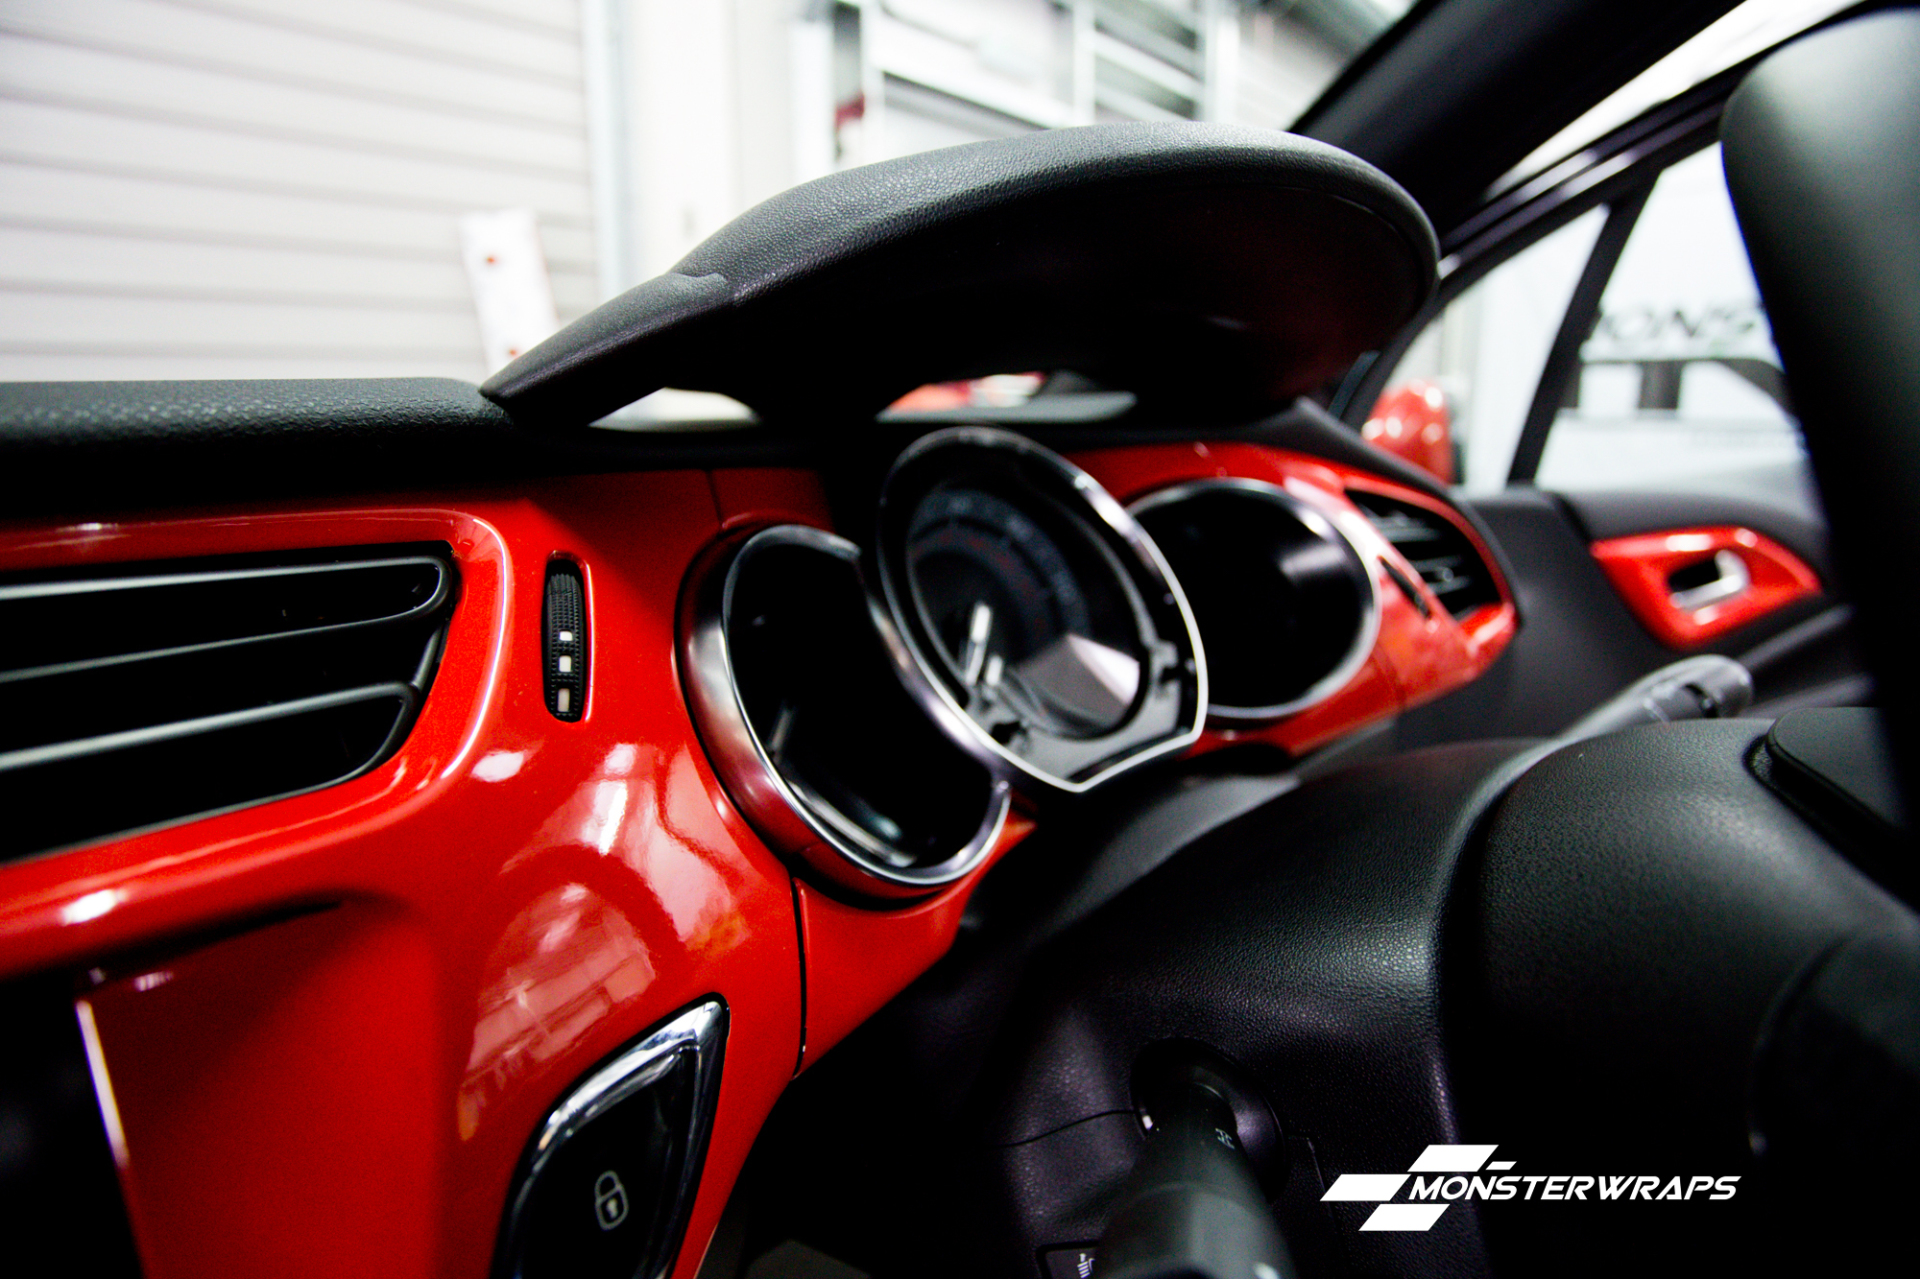 Citroen DS3 interior trim wrap and roof grille mirror wrap